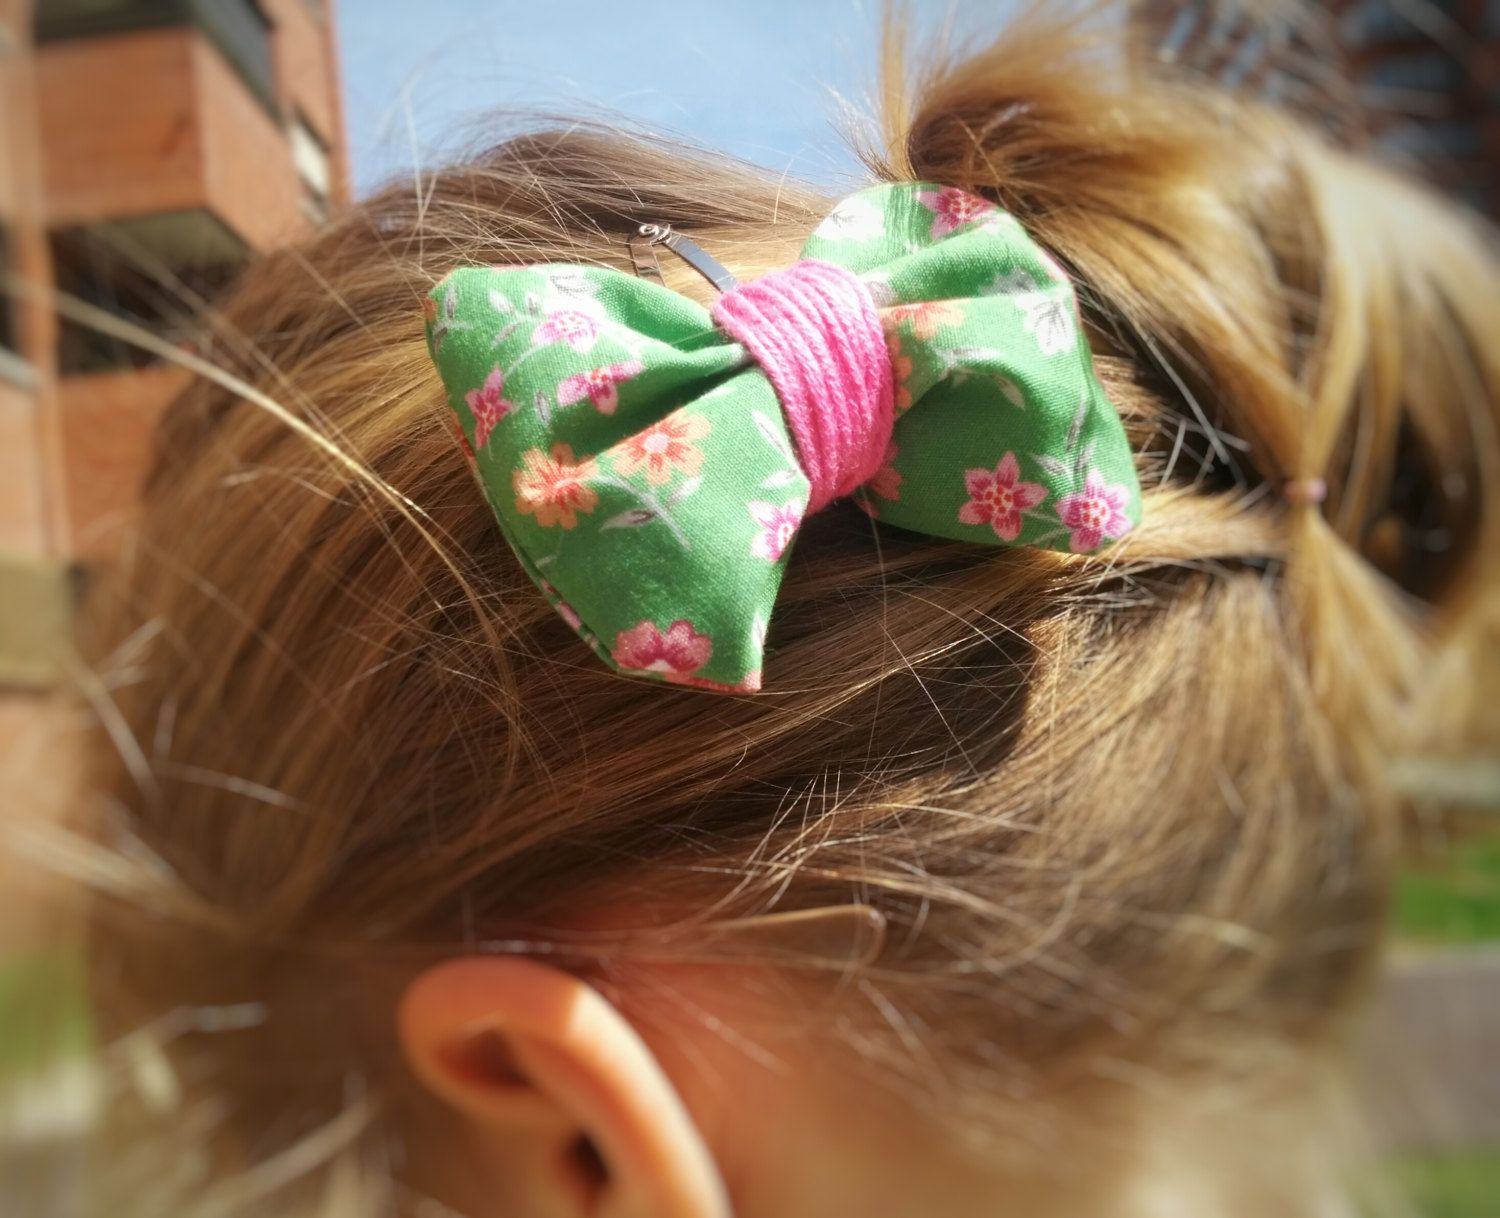 Hair pin ribbon made with stuffed fabric pink flowers for girls